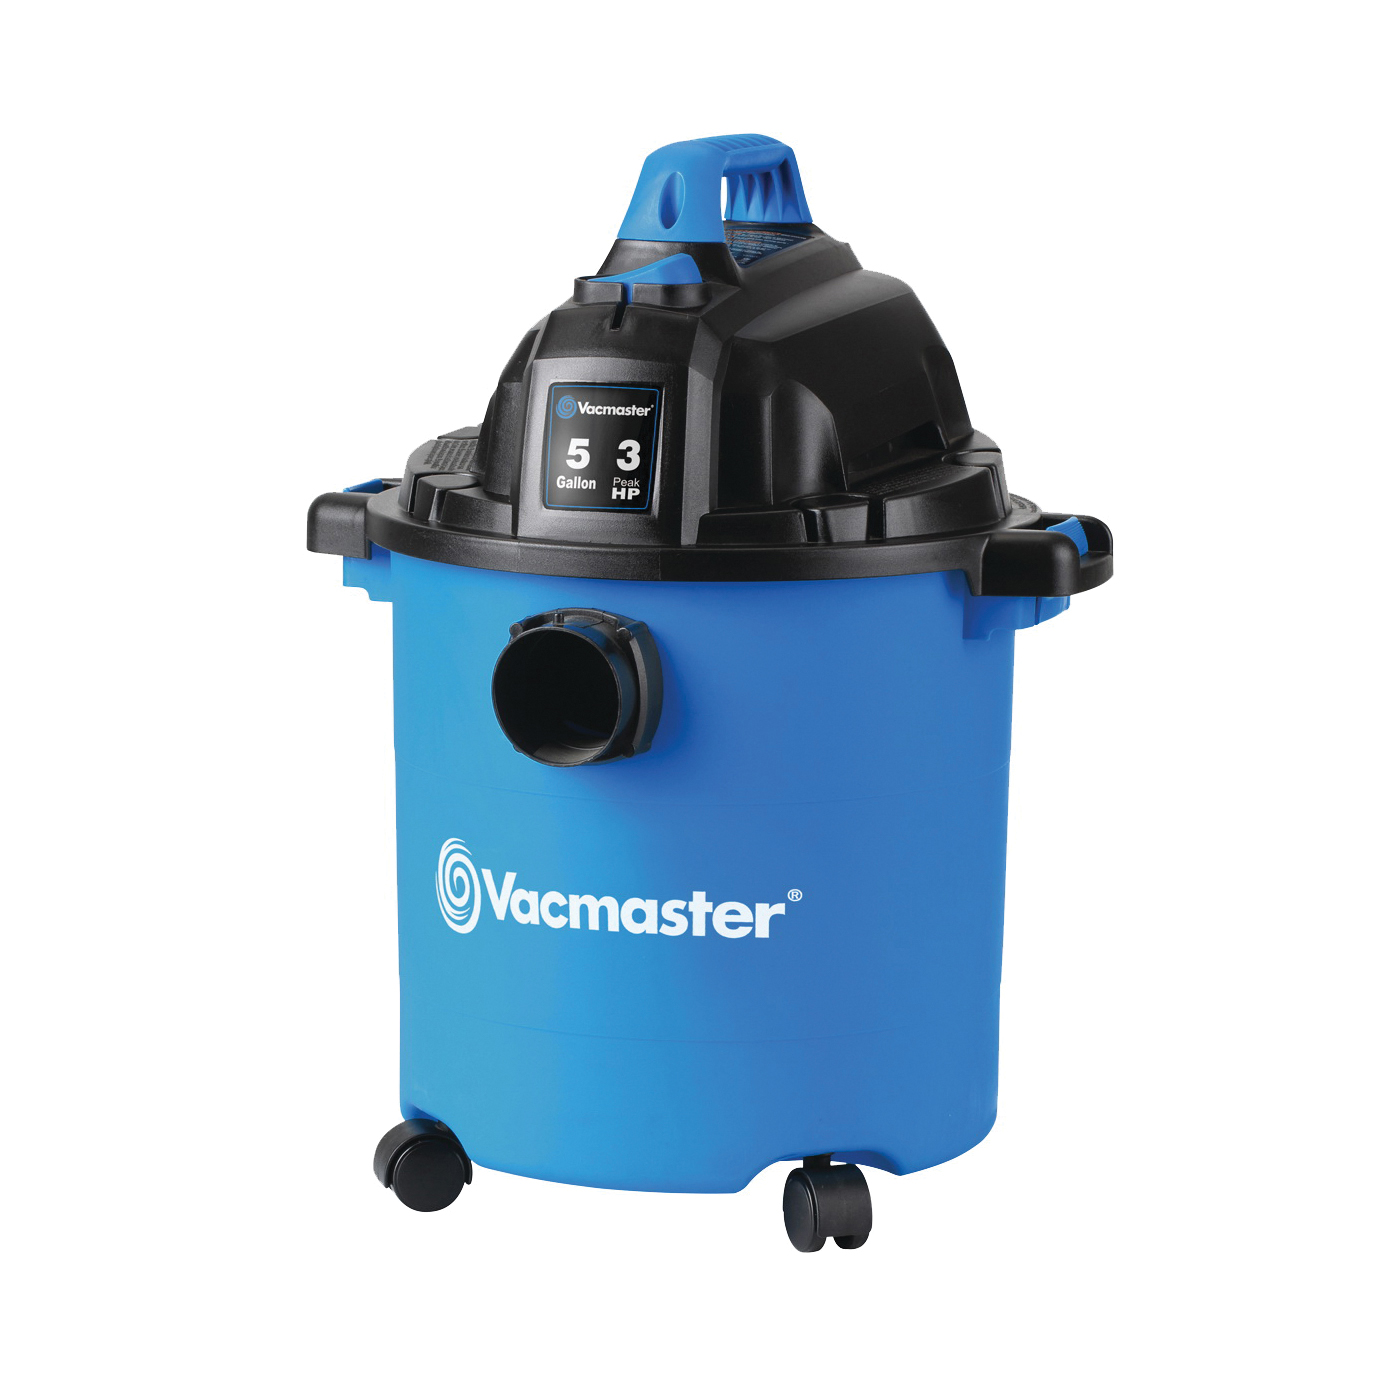 Picture of Vacmaster Professional VJC507P Wet/Dry Vacuum Cleaner, 5 gal Vacuum, Foam Sleeve Filter